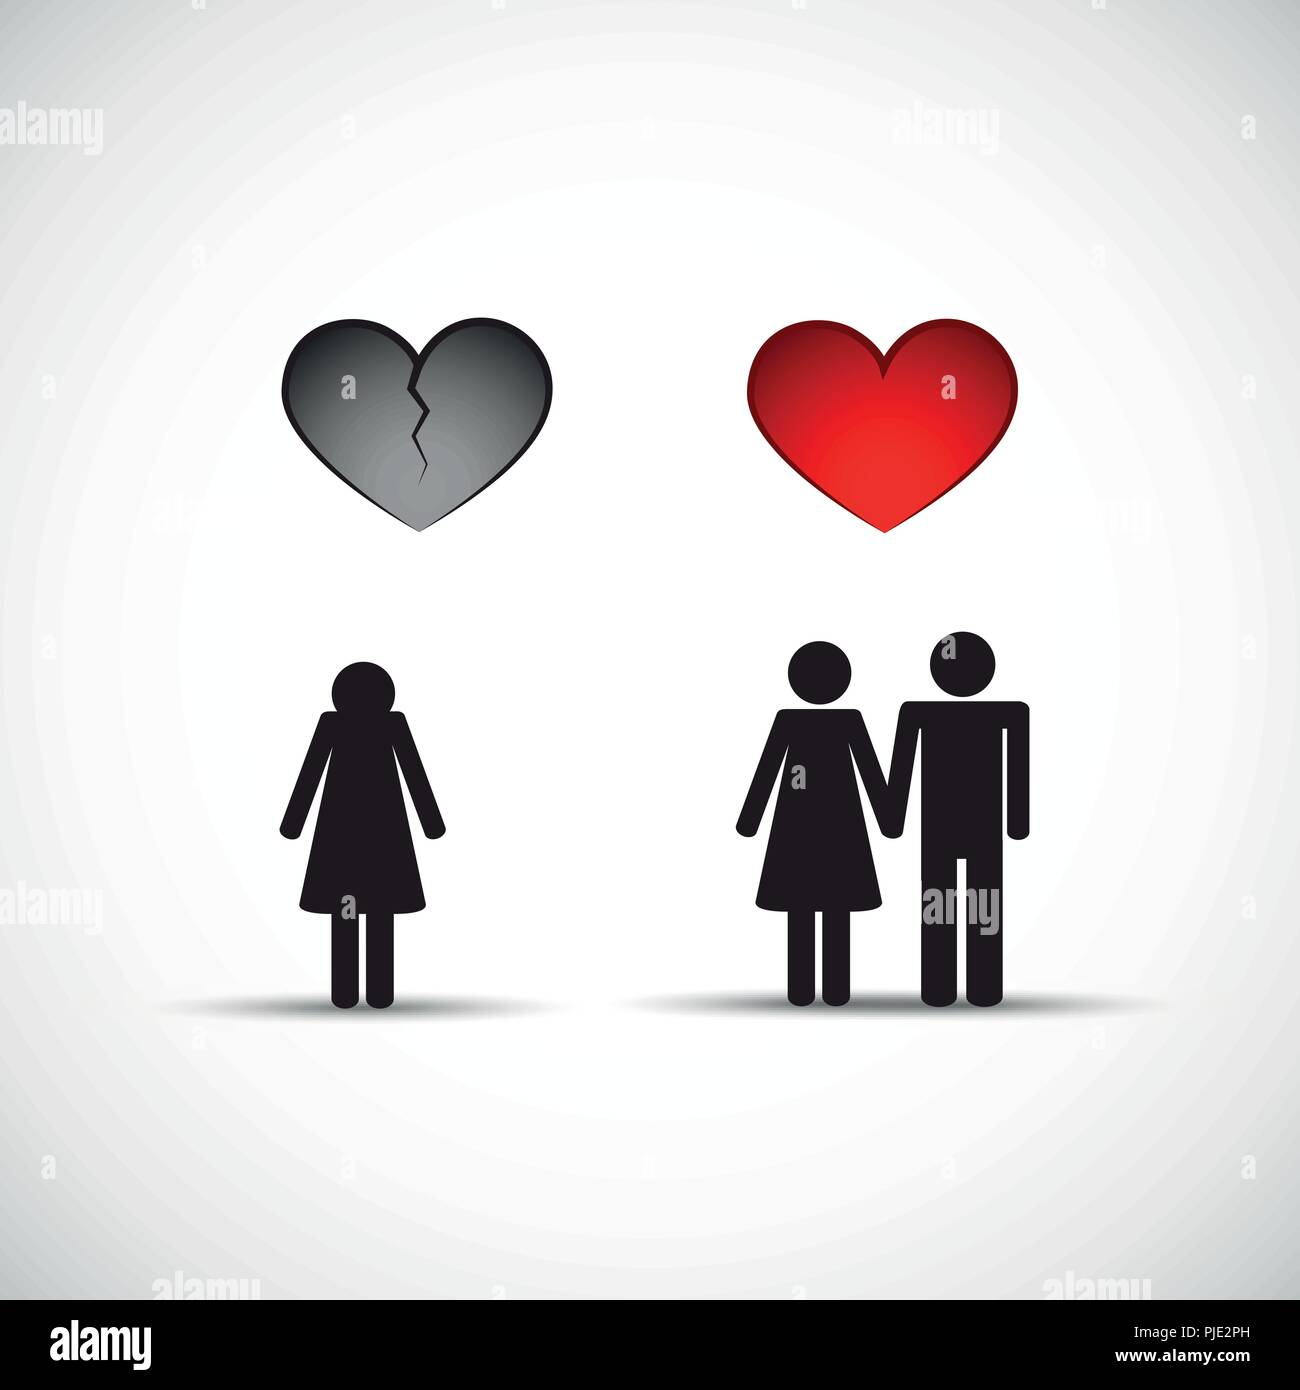 Man leaves wife and starts new relationship pictogram vector illustration EPS10 - Stock Image